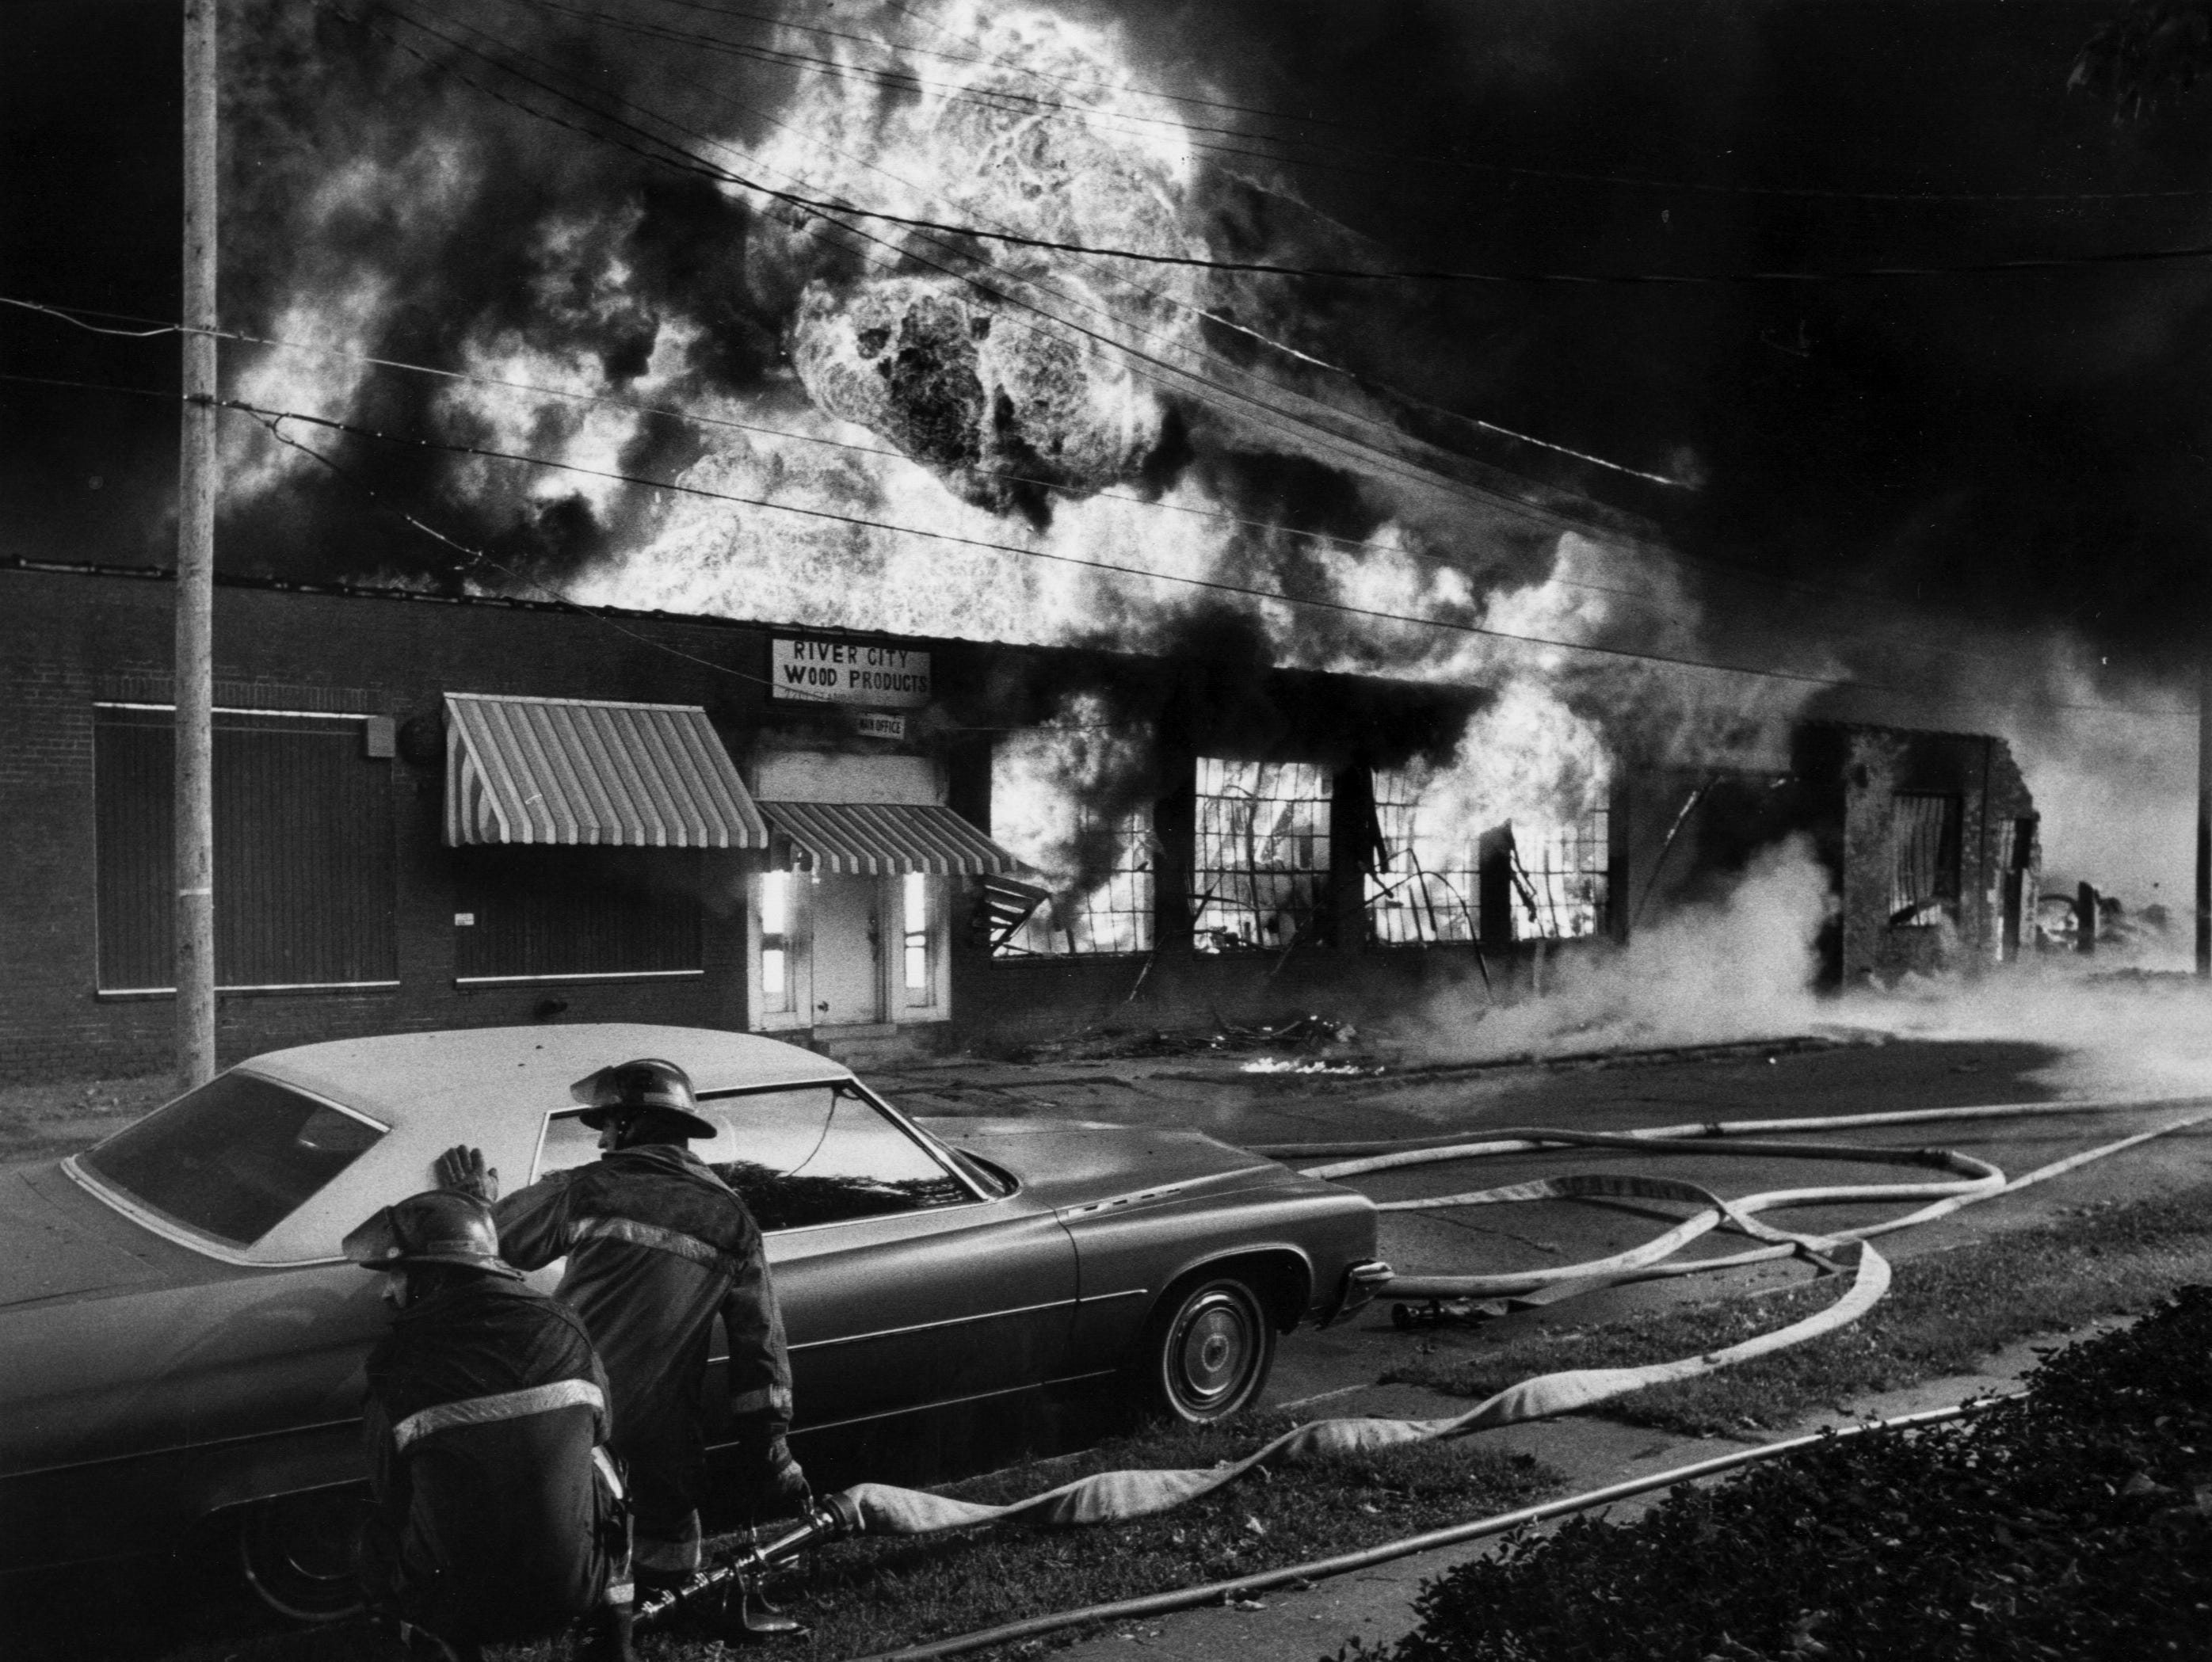 A four-alarm fire at River City Wood Products located on 22nd and Standard. 